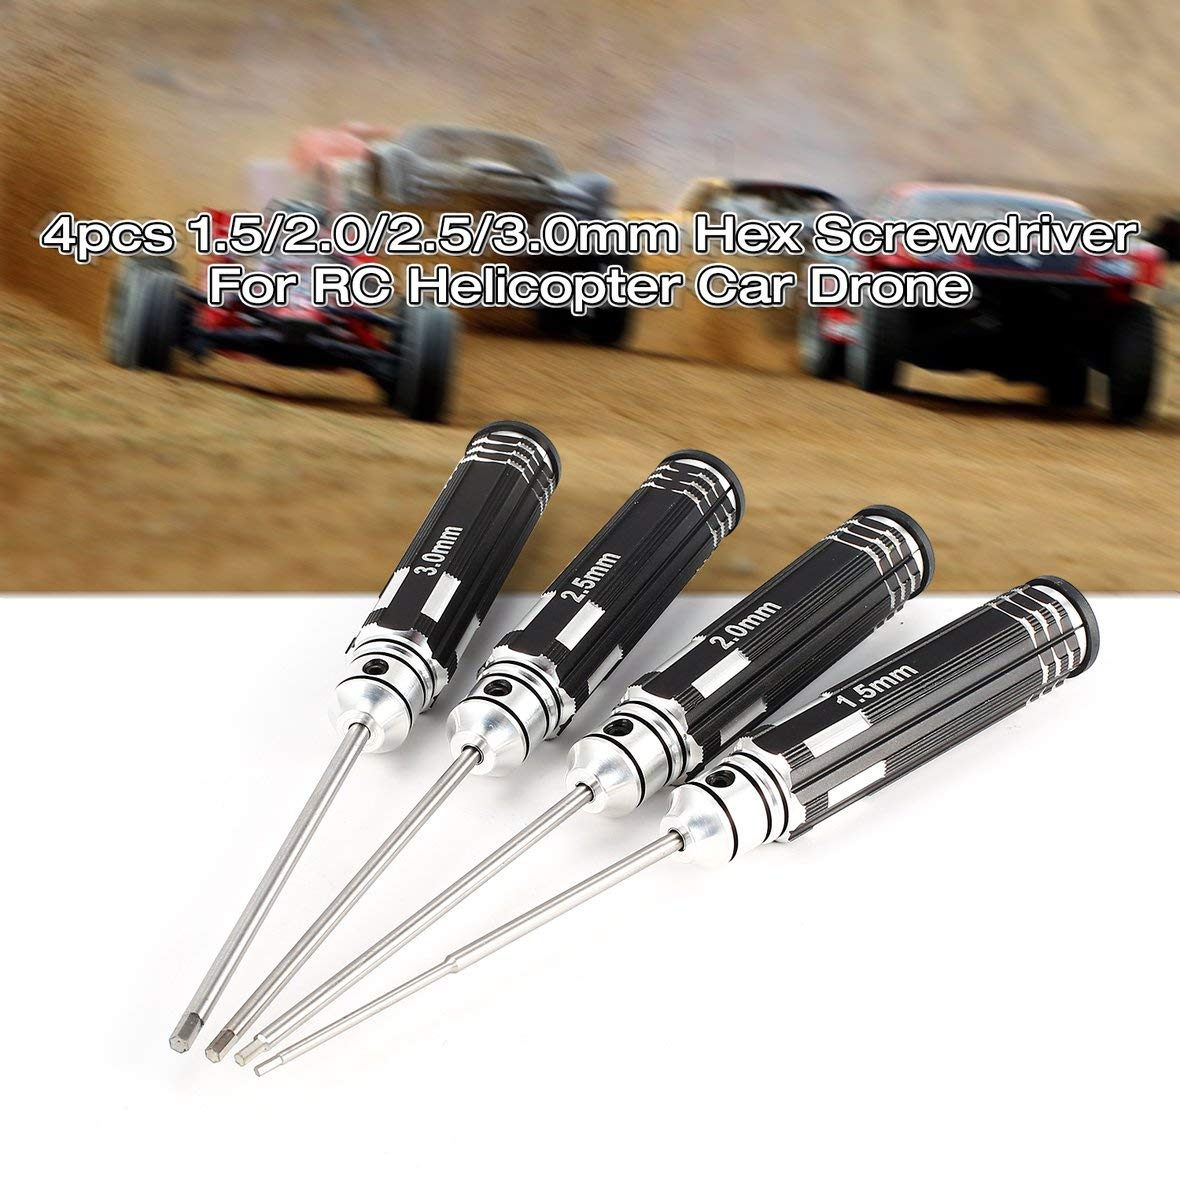 Tivolii 4pcs Hex Screwdriver Set 1.5 2.0 2.5 3.0mm White Steel Tools Kit for RC Helicopter HSP Traxxas Car Racing Drone Aircraft